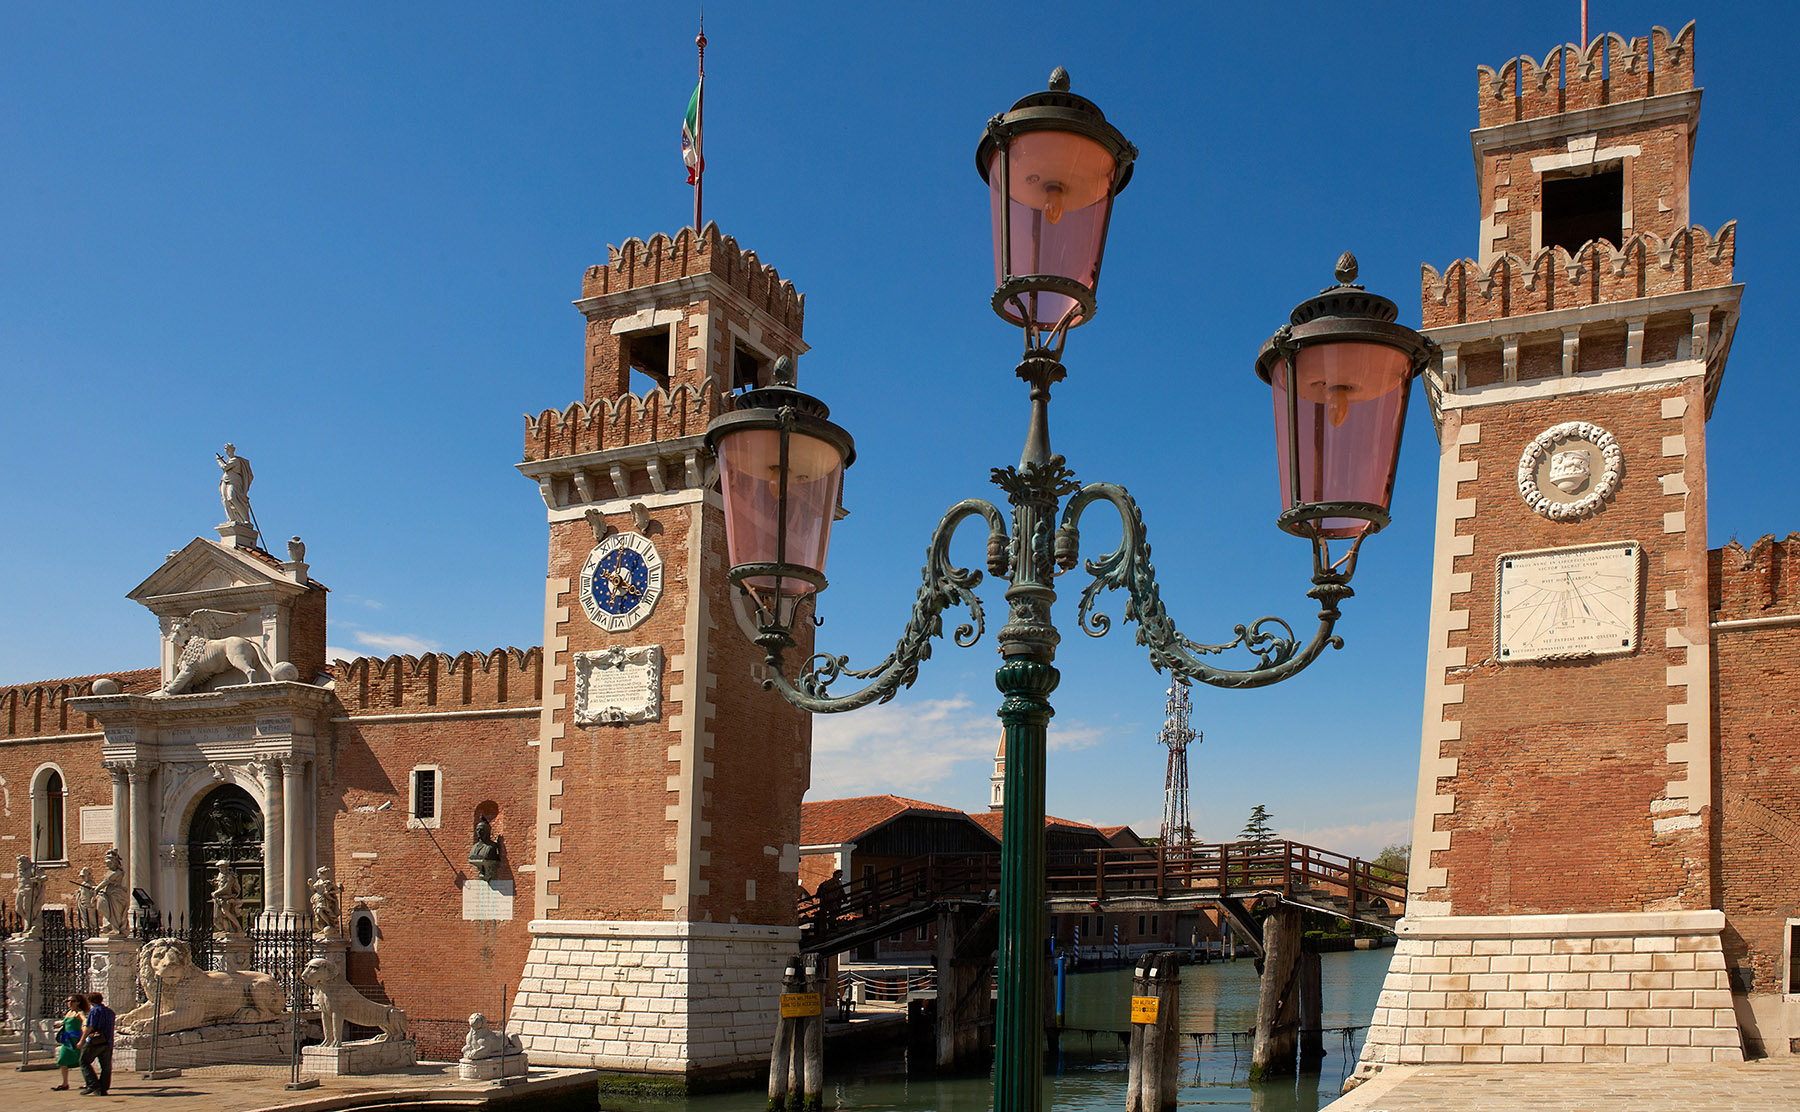 Tour of the Castello district of Venice - The Arsenale